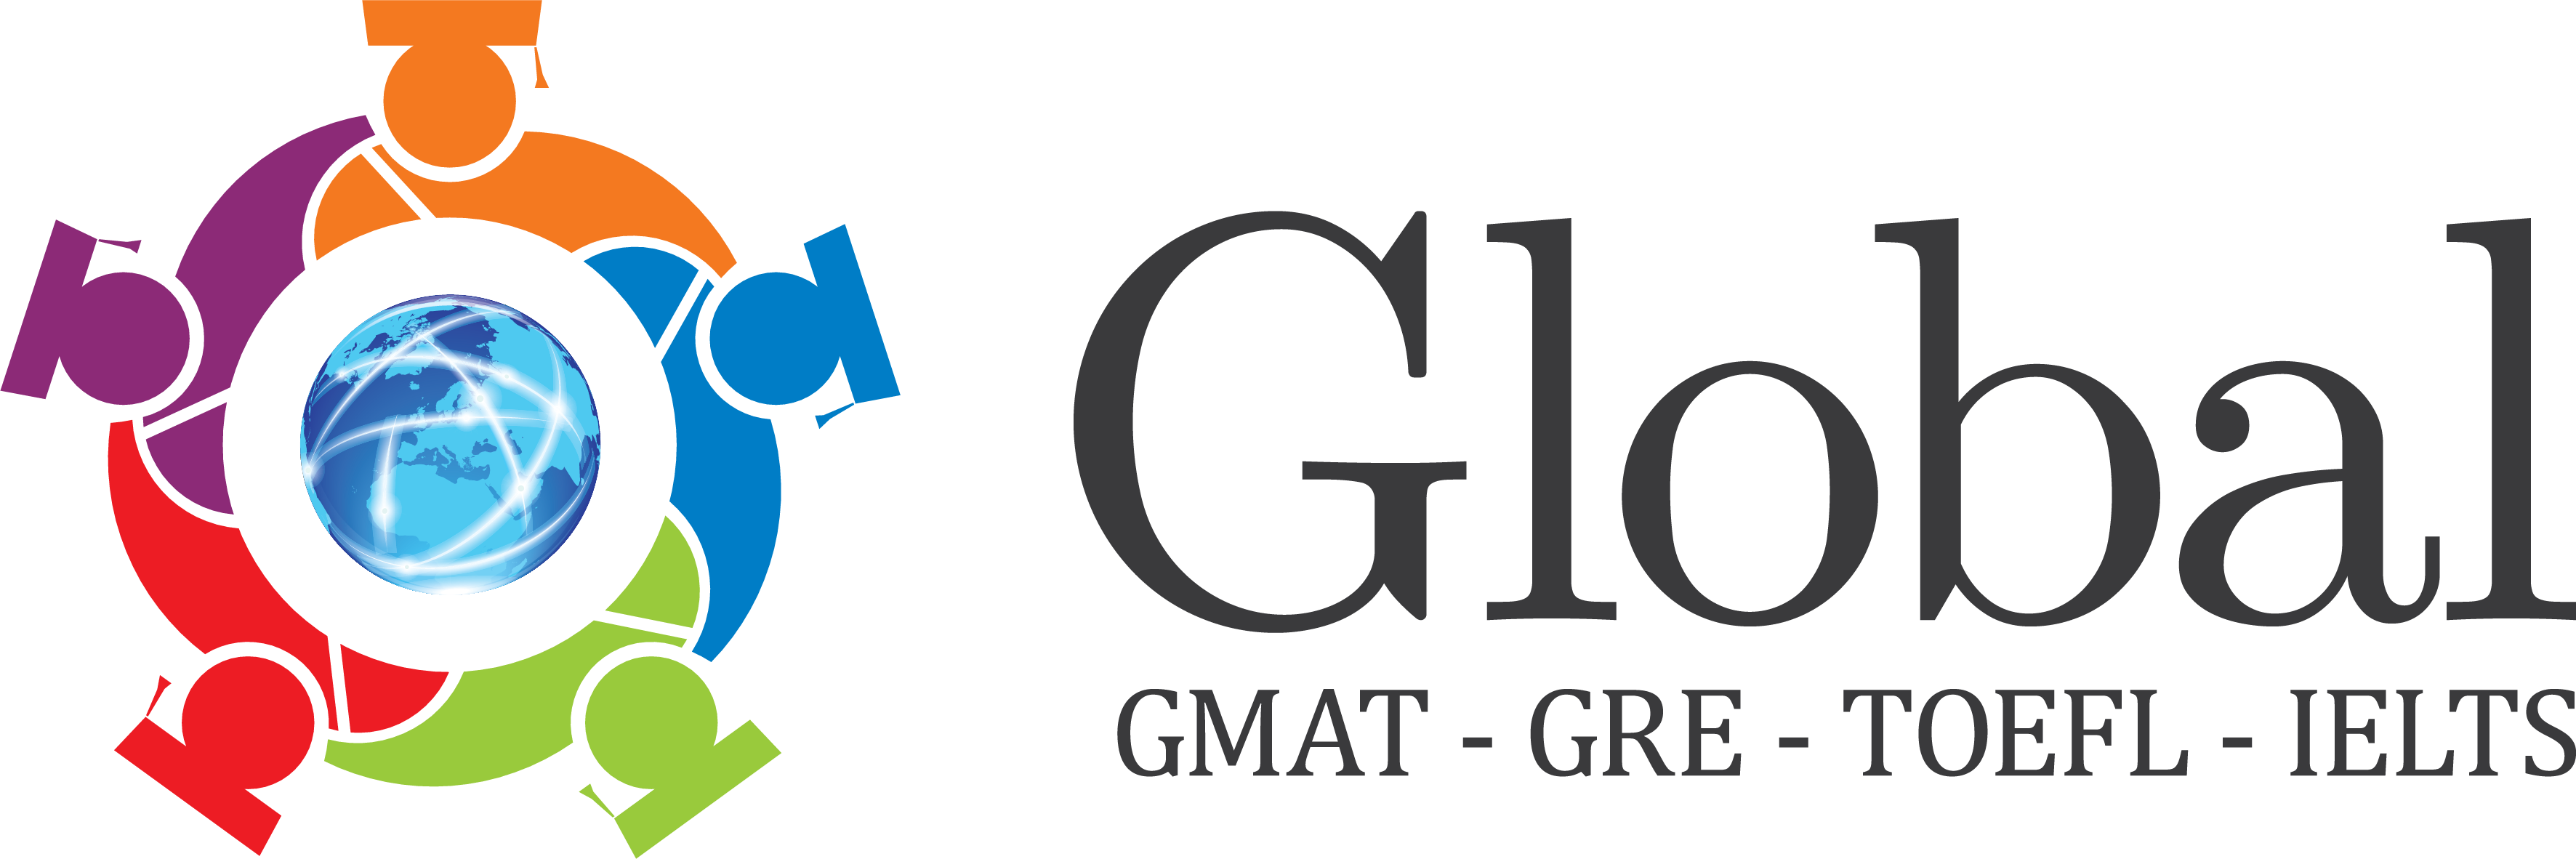 Global_logotype_gmat